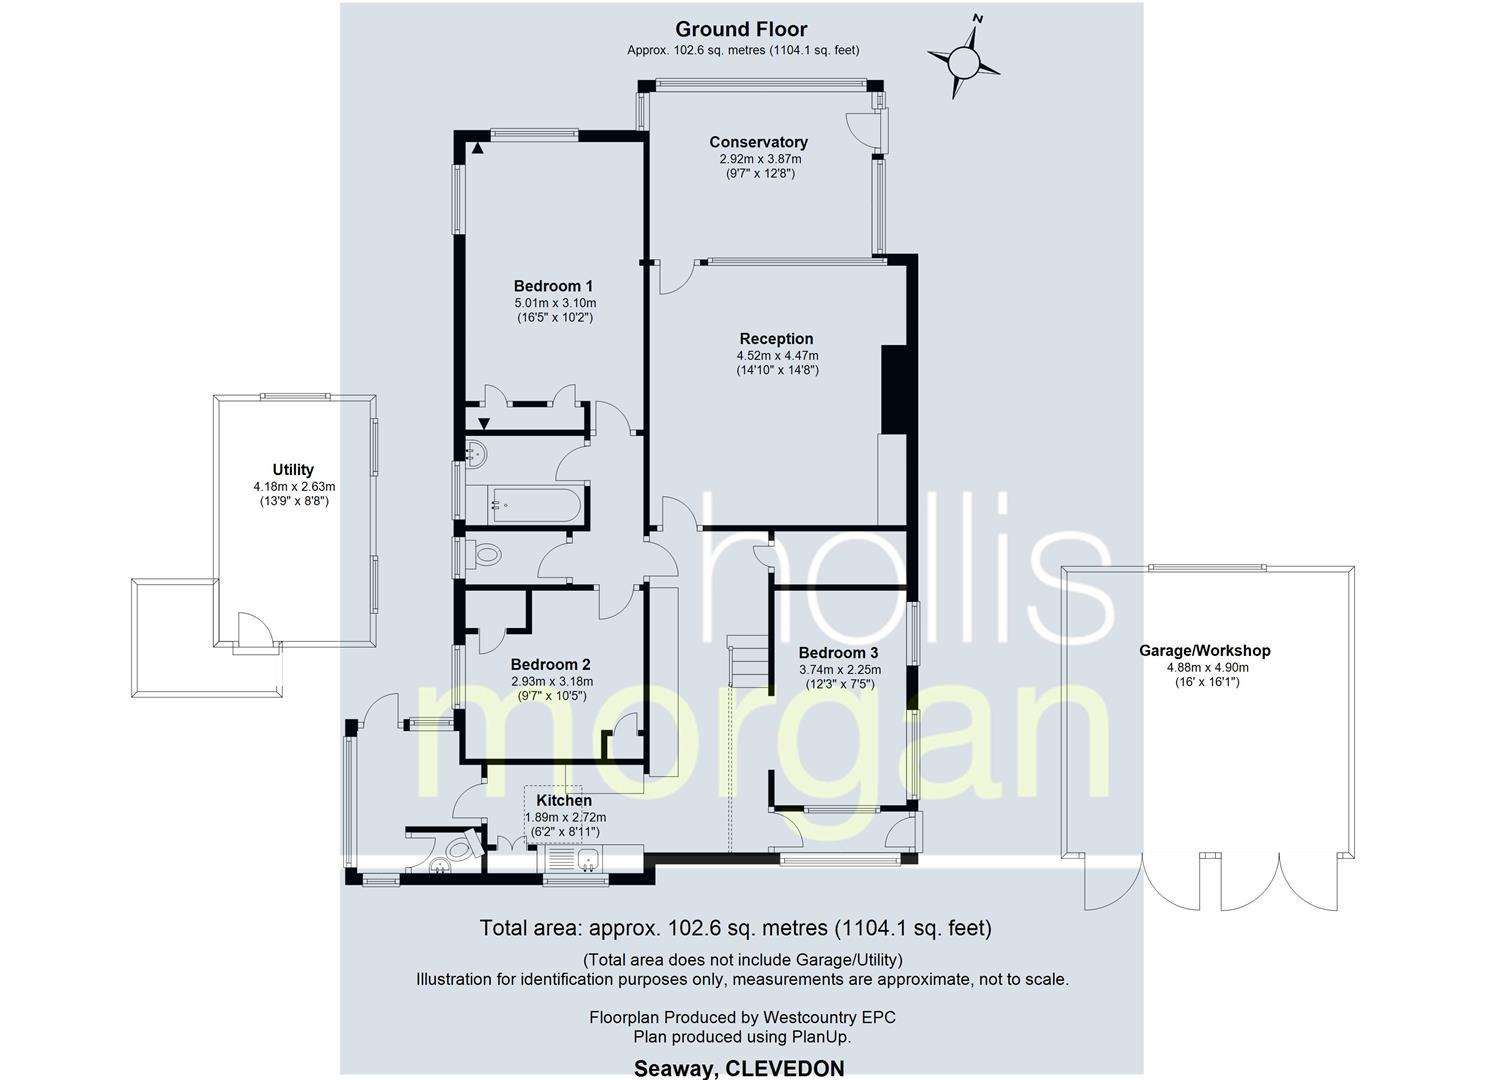 Floorplans For Walton Down, Clevedon